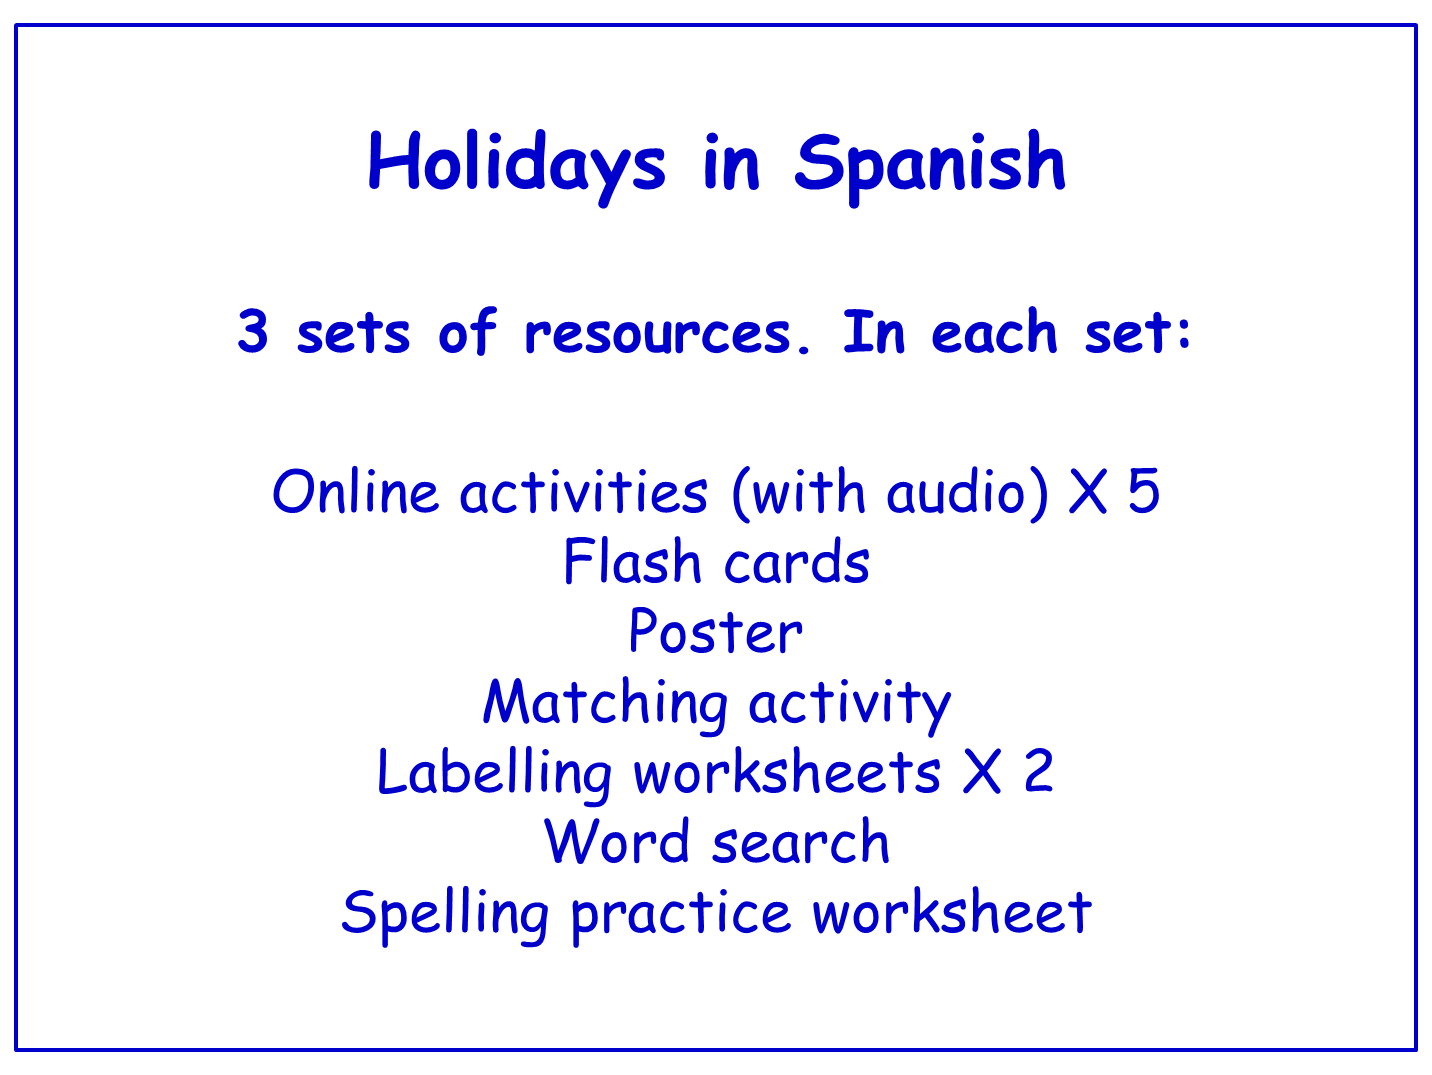 Holidays in Spanish  Worksheets, Games, Activities and Flash Cards (with audio) Bundle (3 sets)